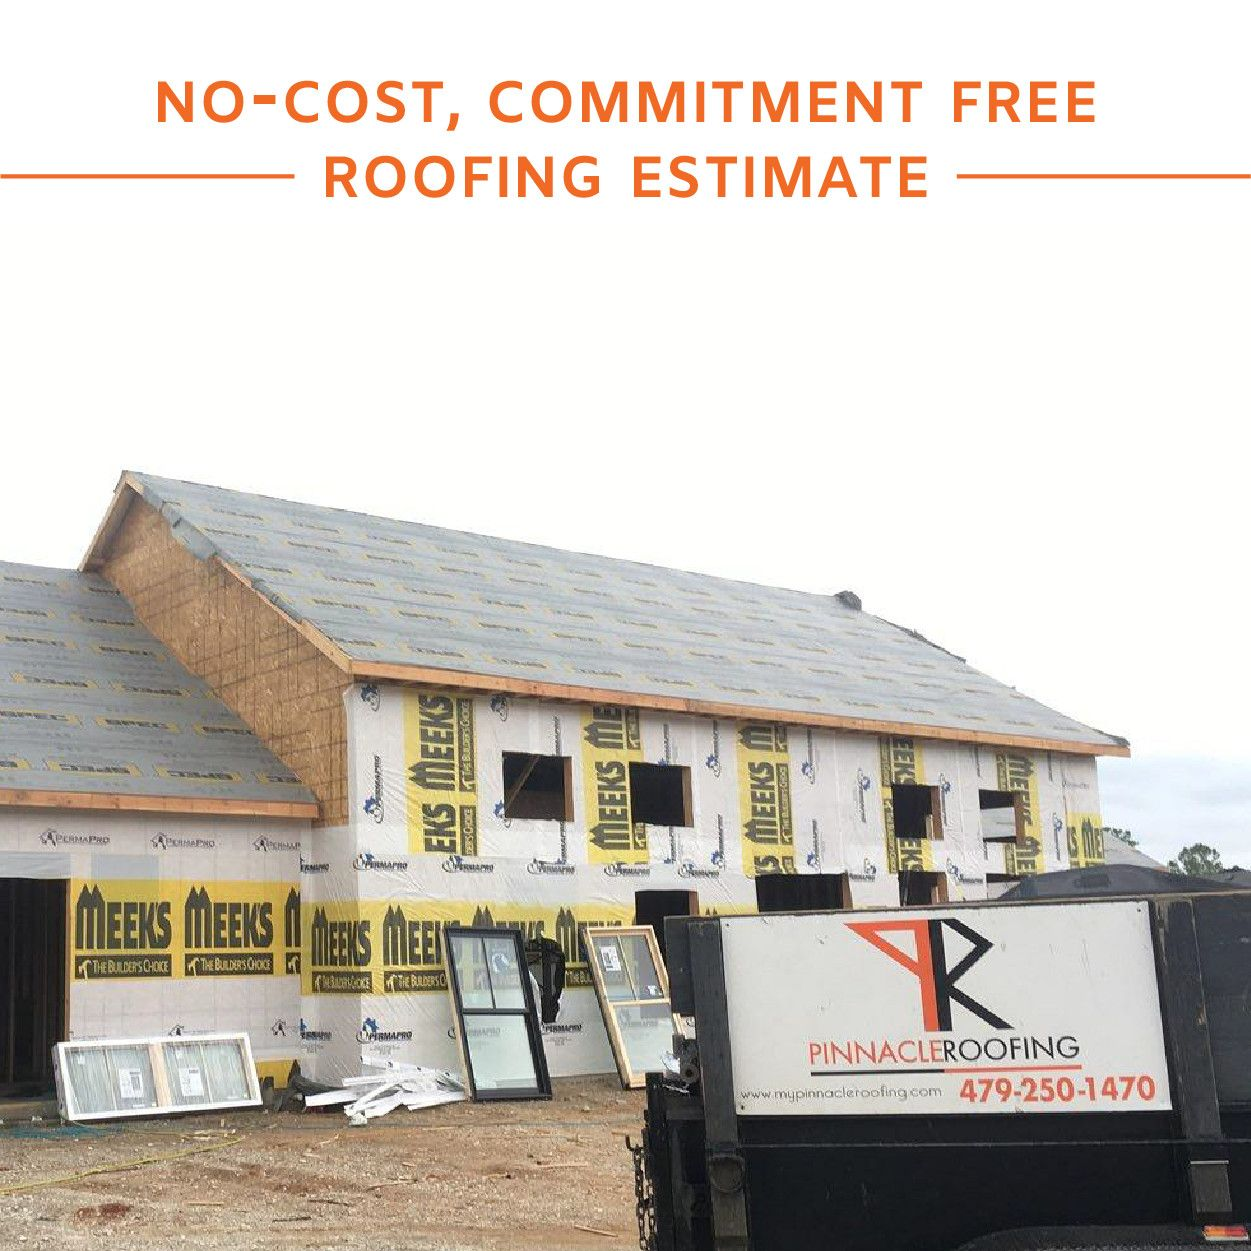 Not Quite Ready For A Commitment That S Okay Let The Pinnacle Roofing Team Provide You With A No Cost Commitmen Roofing Estimate Roofing Roofing Contractors